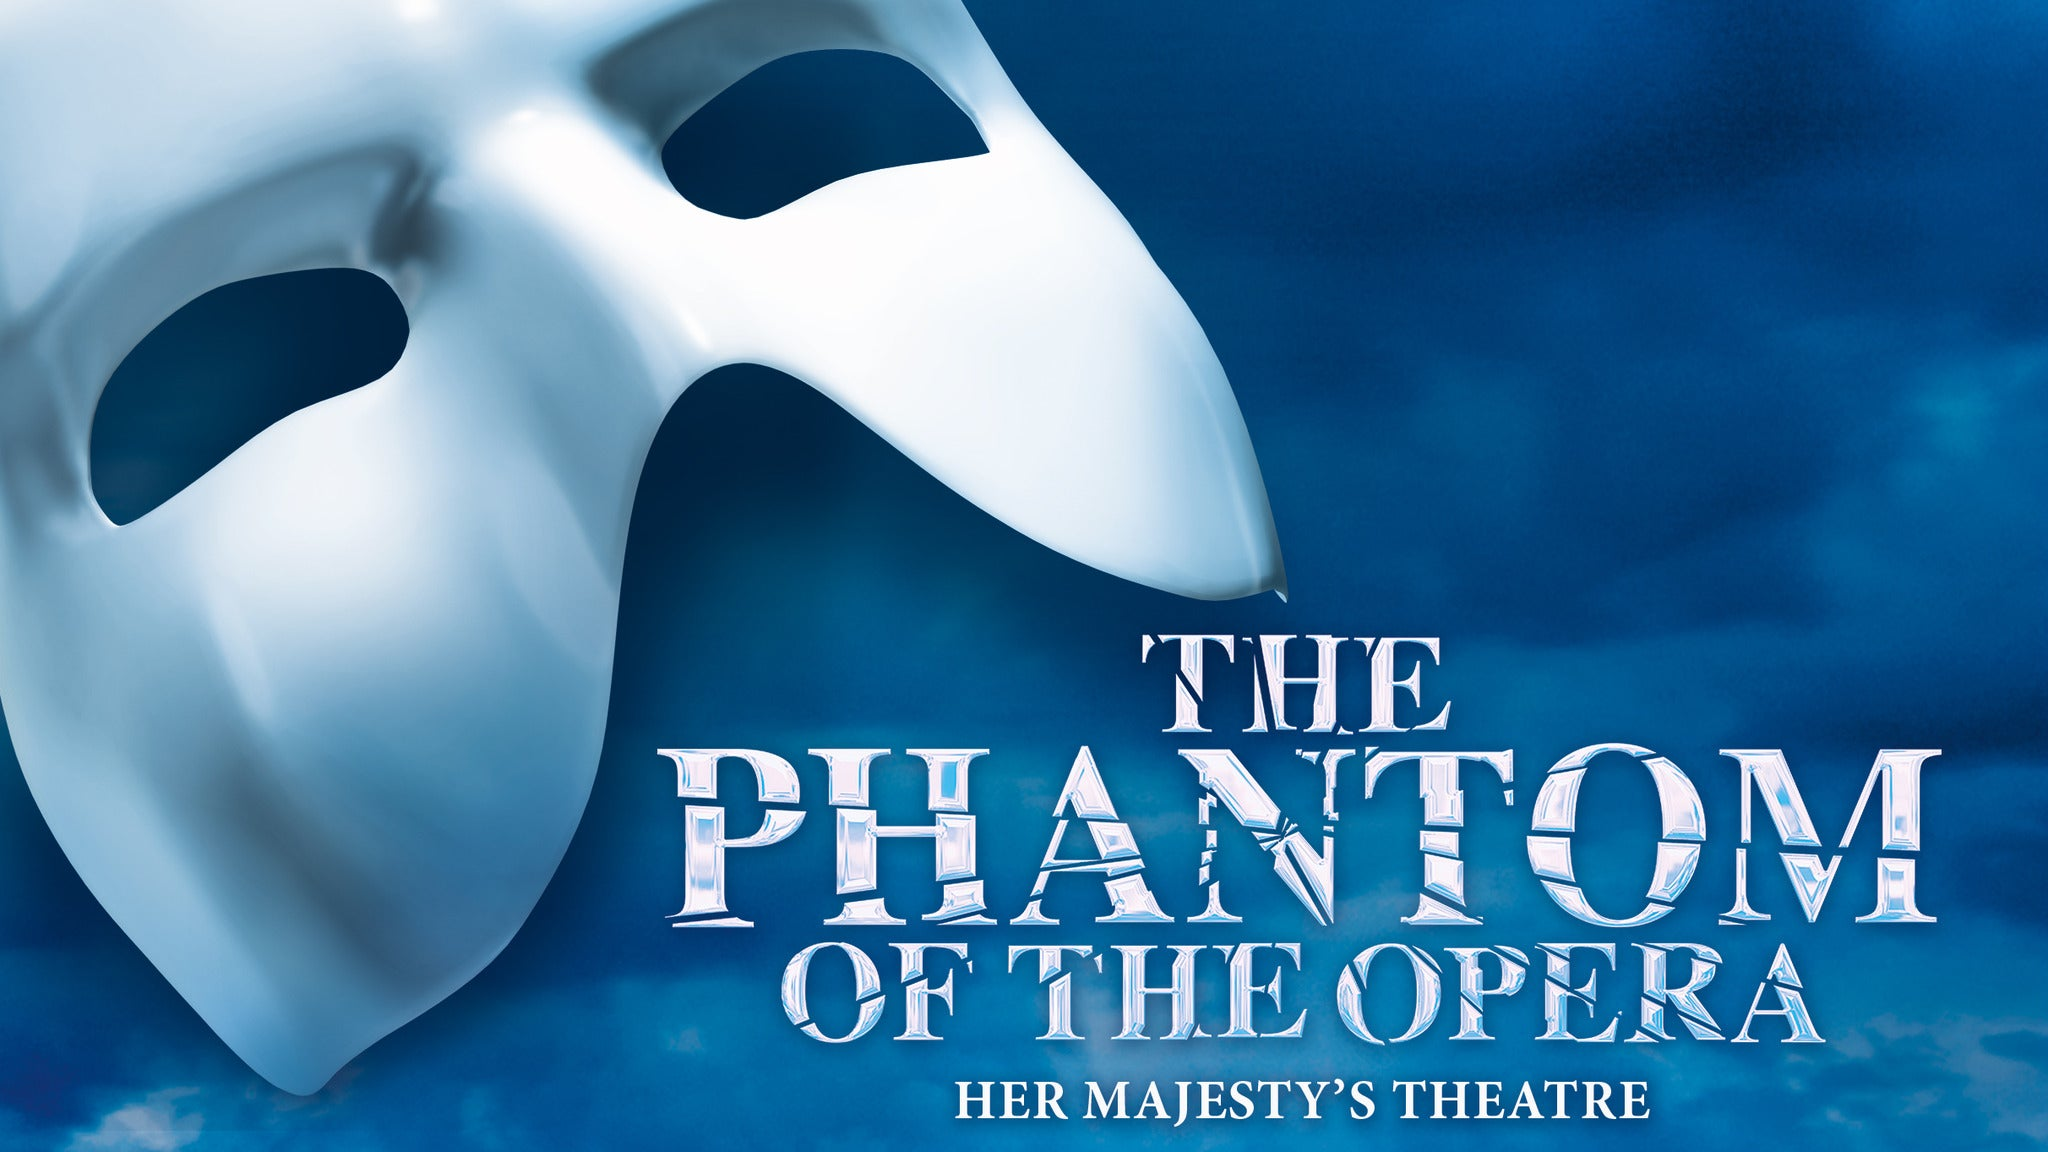 Phantom Of The Opera at Paramount Theatre-Washington - Seattle, WA 98101